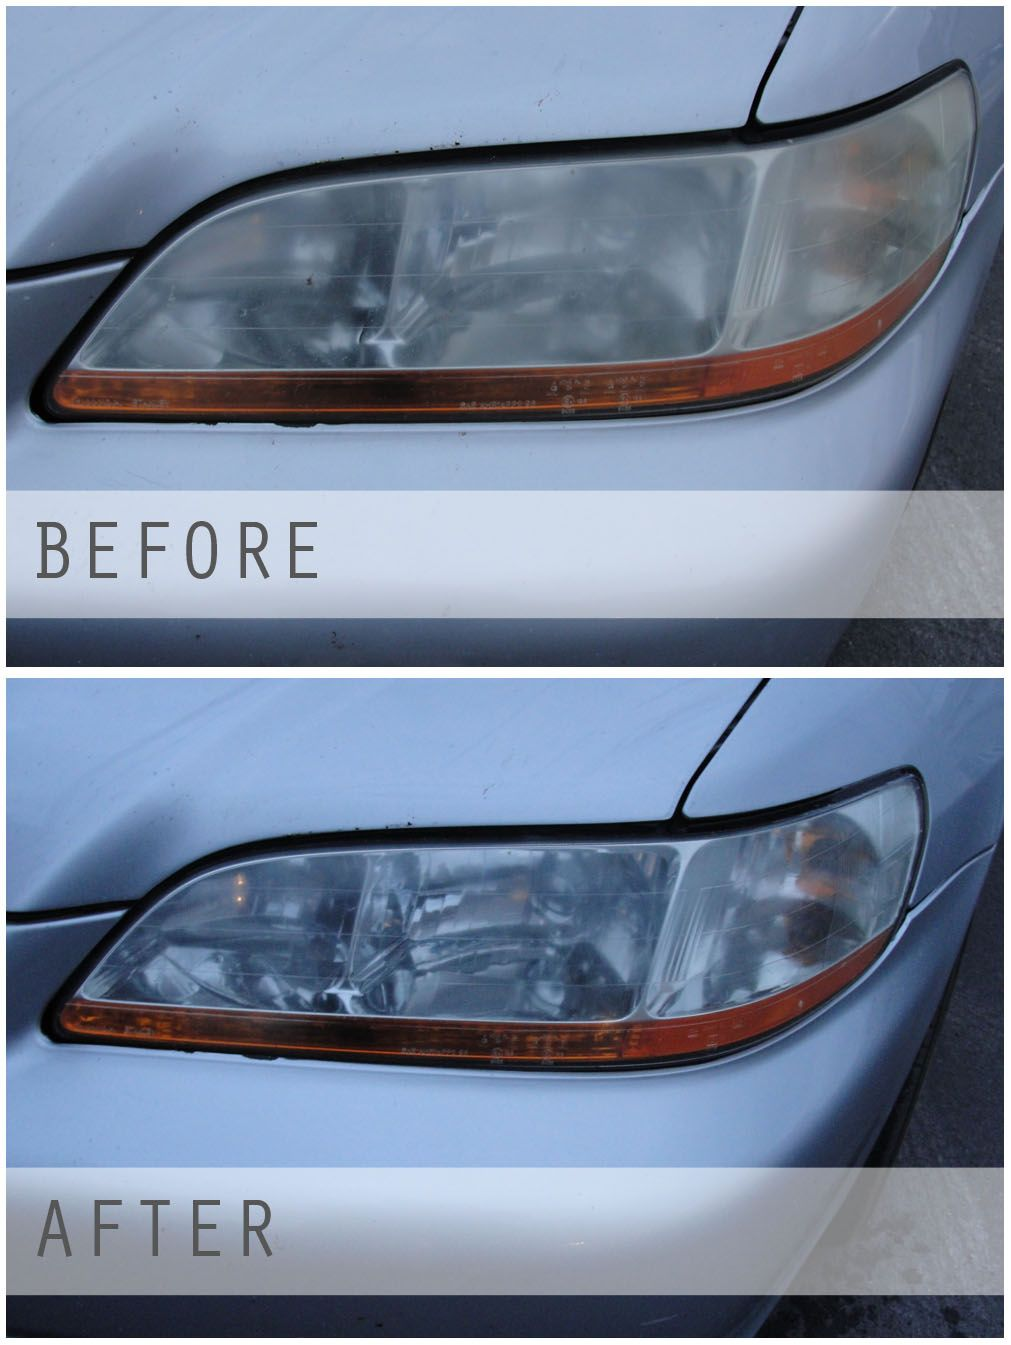 Foggy headlight clean it up how to clean headlights